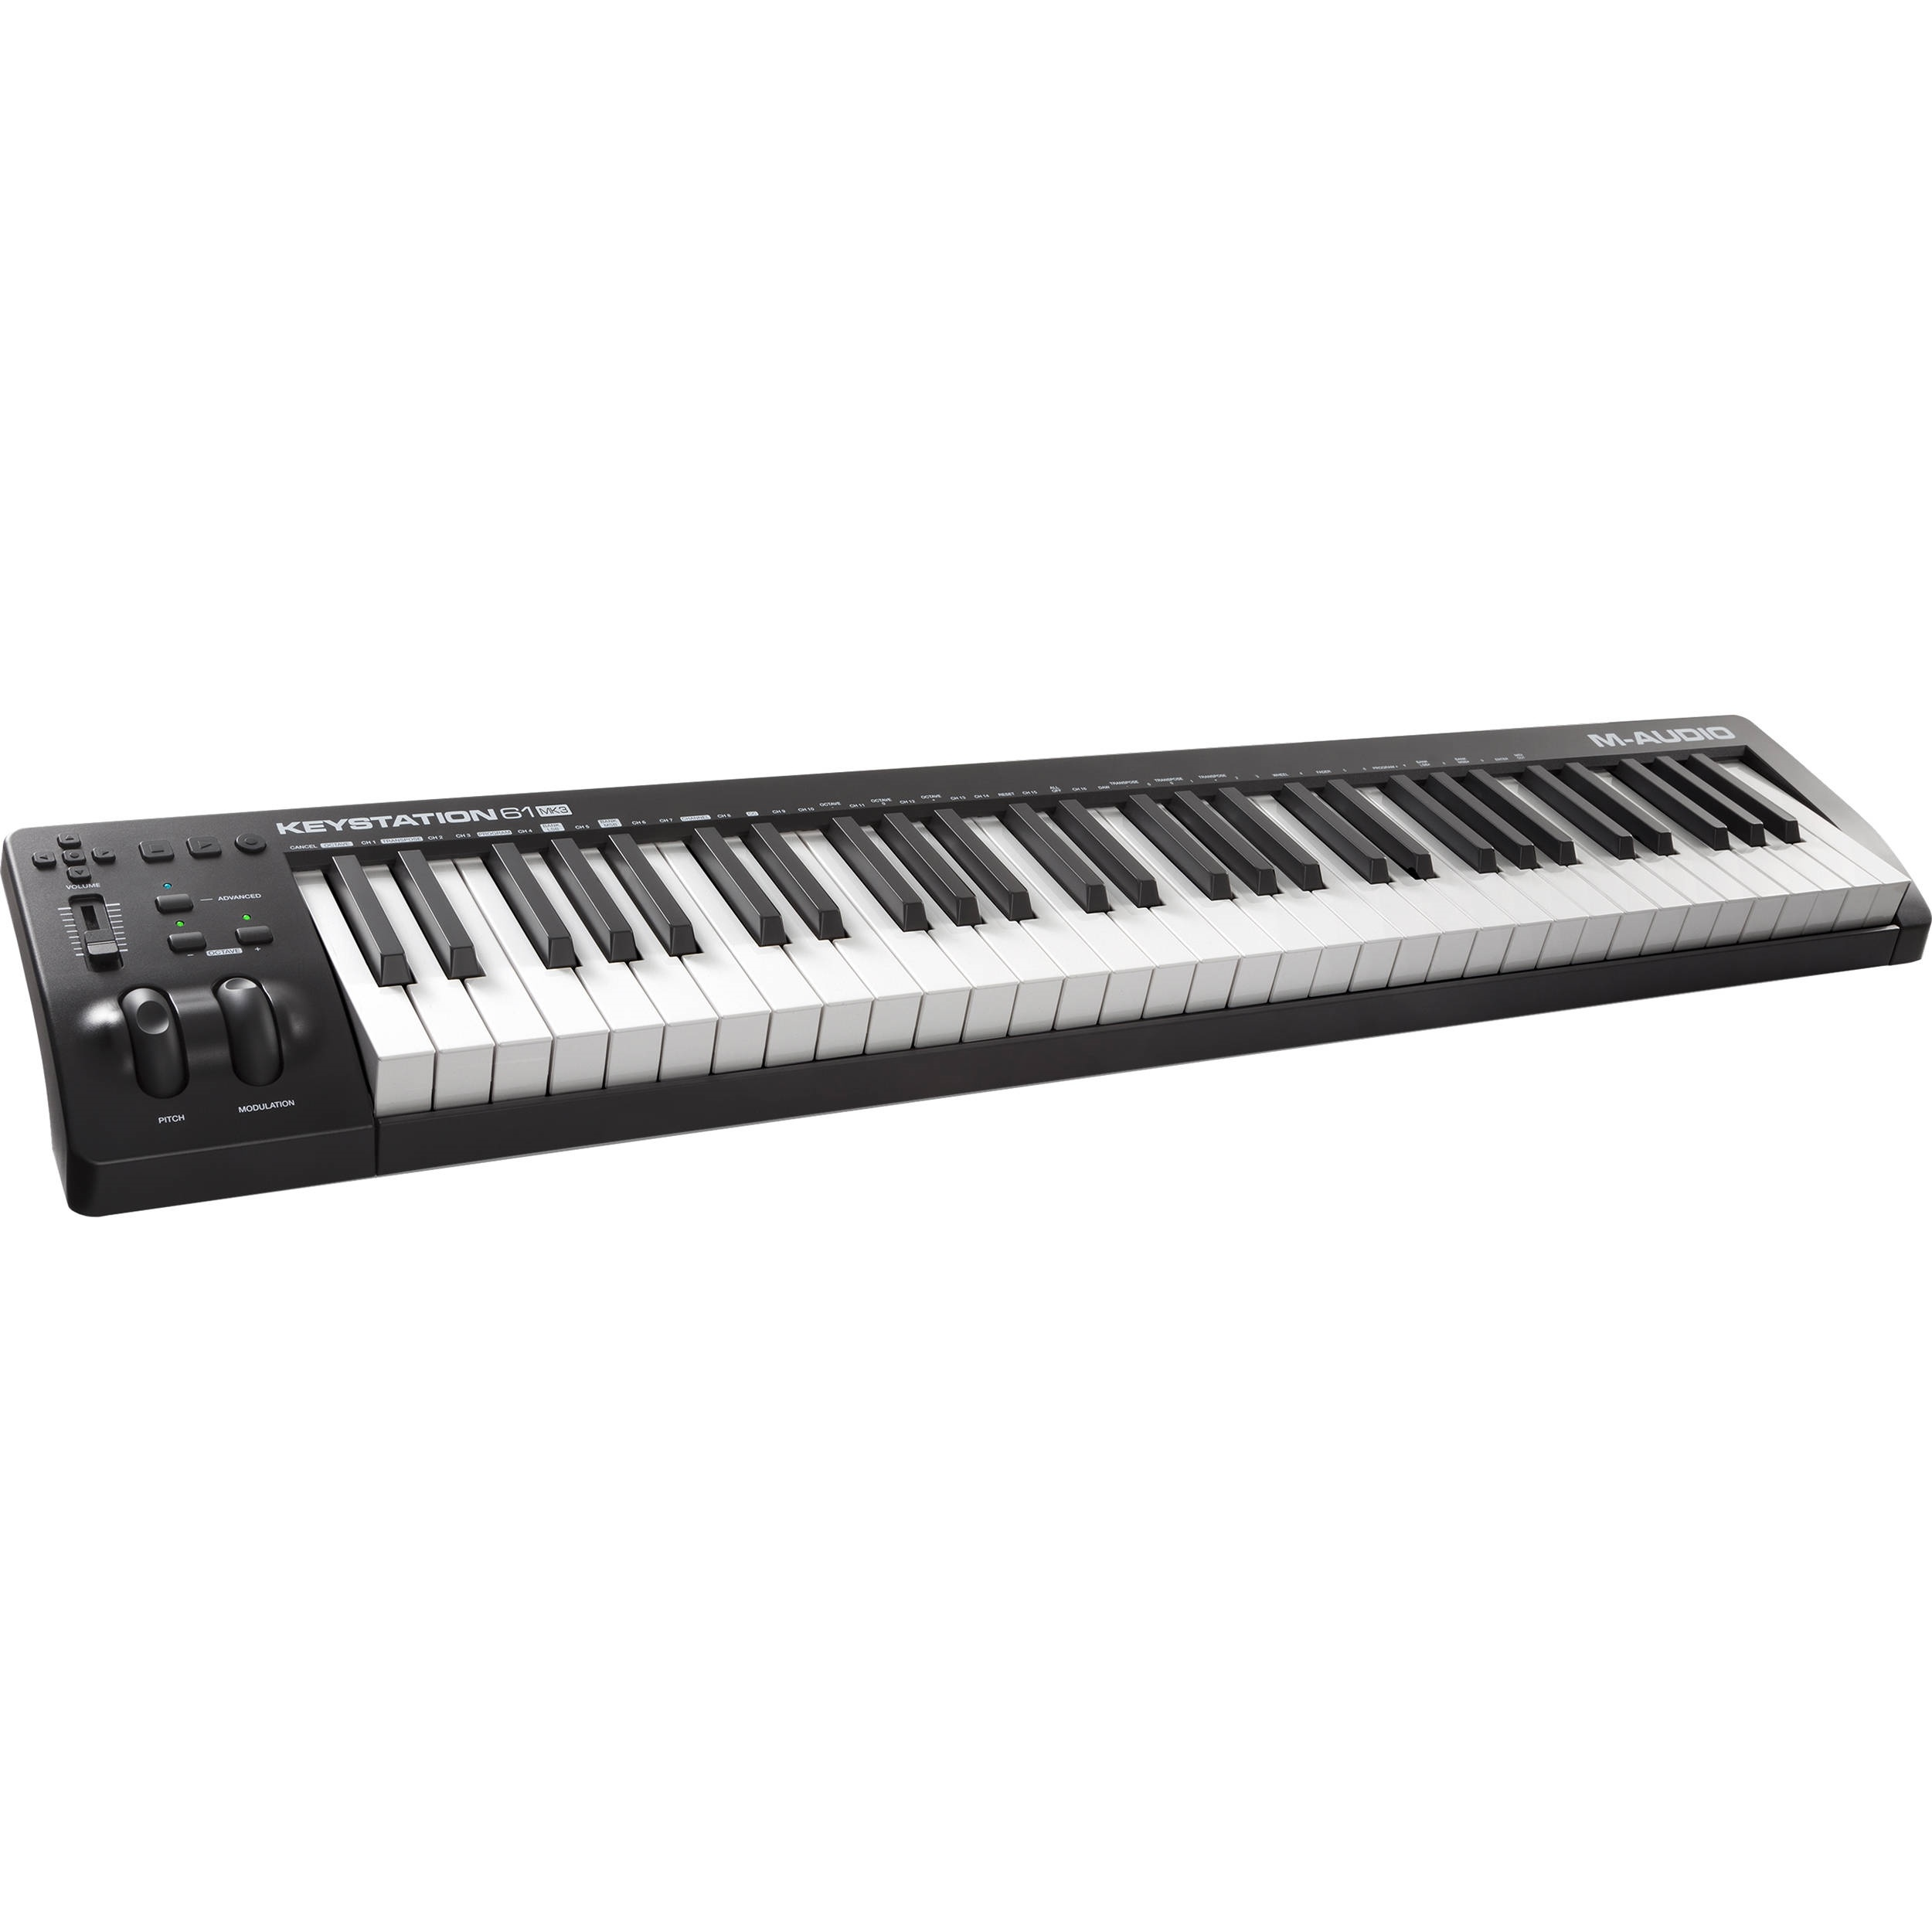 M-Audio Keystation 61 MK3 61-Key USB-Powered MIDI Controller